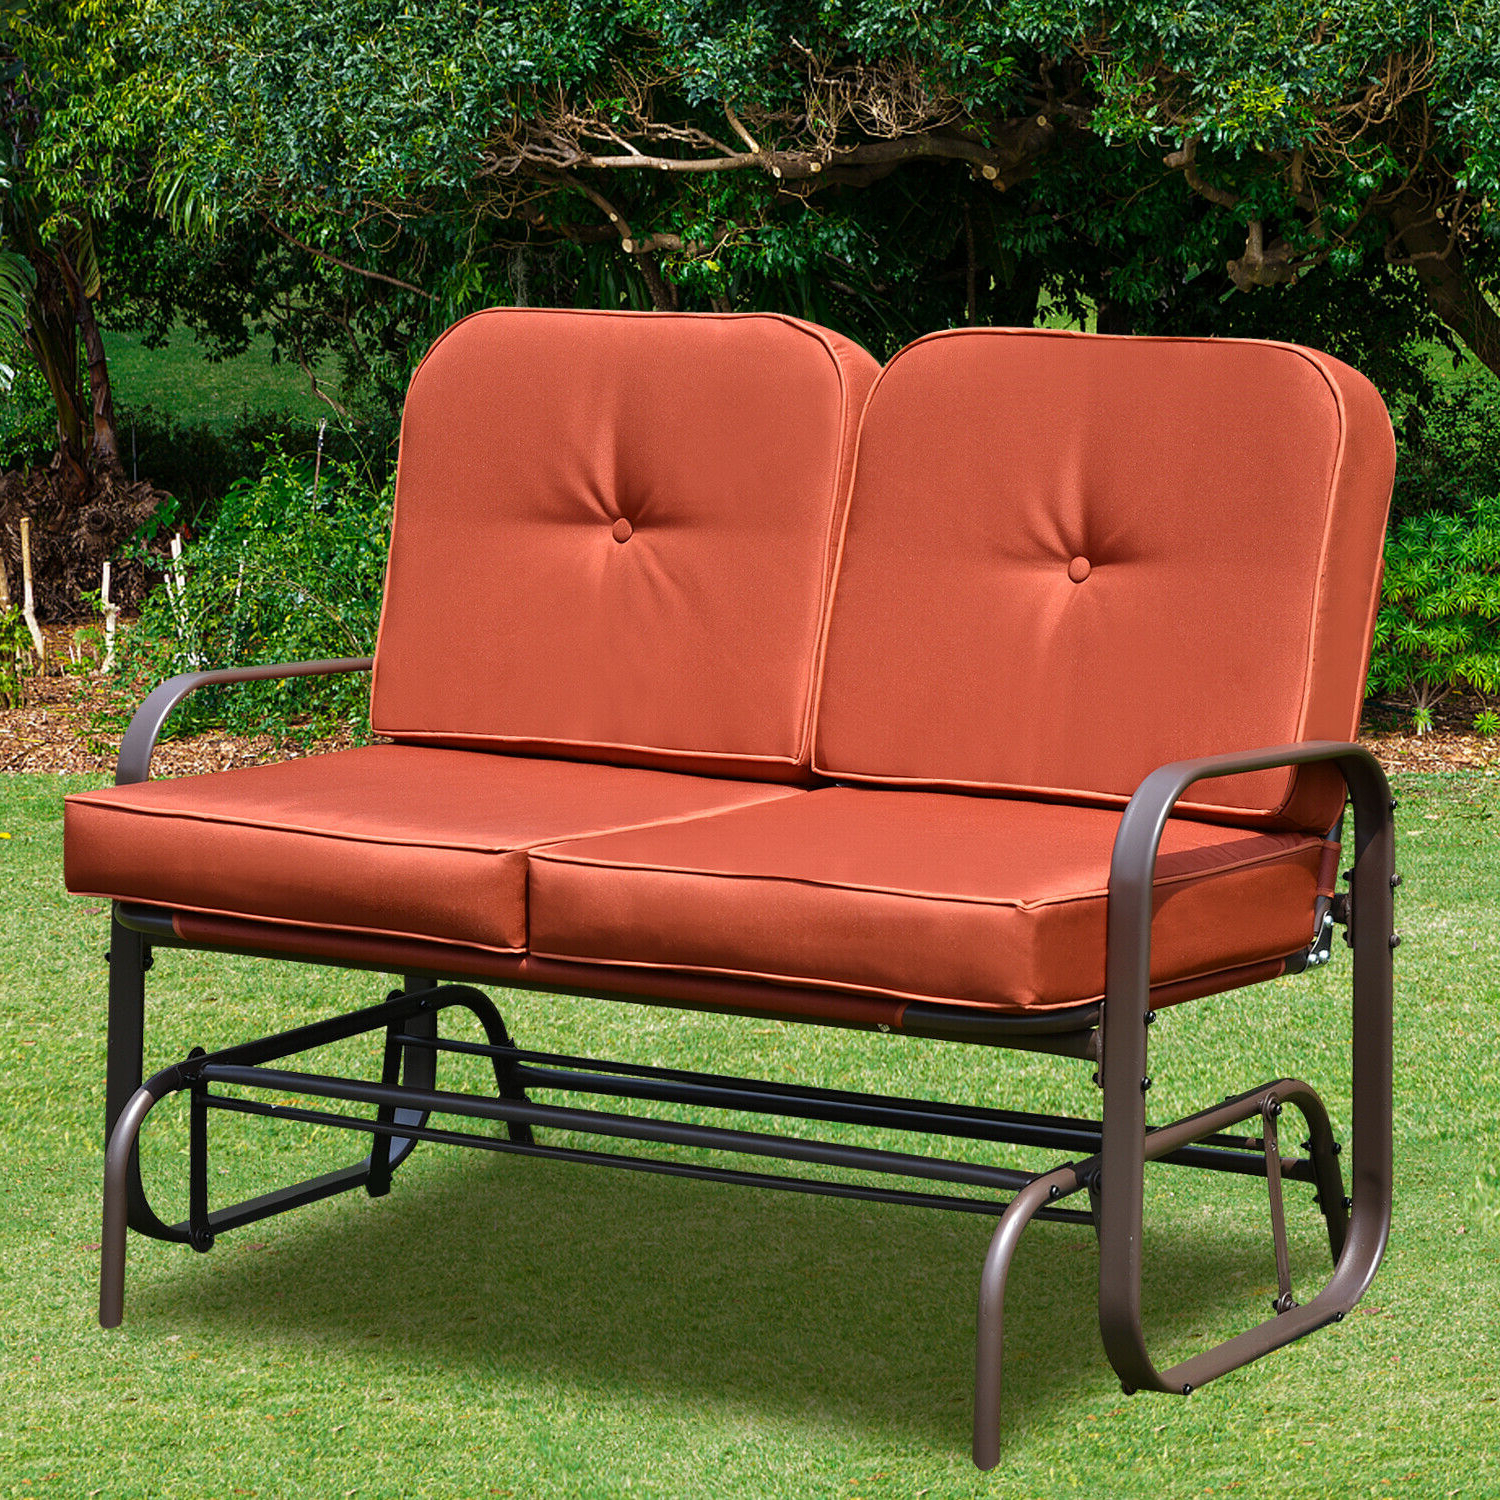 Patio Glider Bench Chair 2 Person Rocker Loveseat Outdoor Furniture W/  Cushions Intended For Fashionable Glider Benches With Cushions (View 22 of 30)